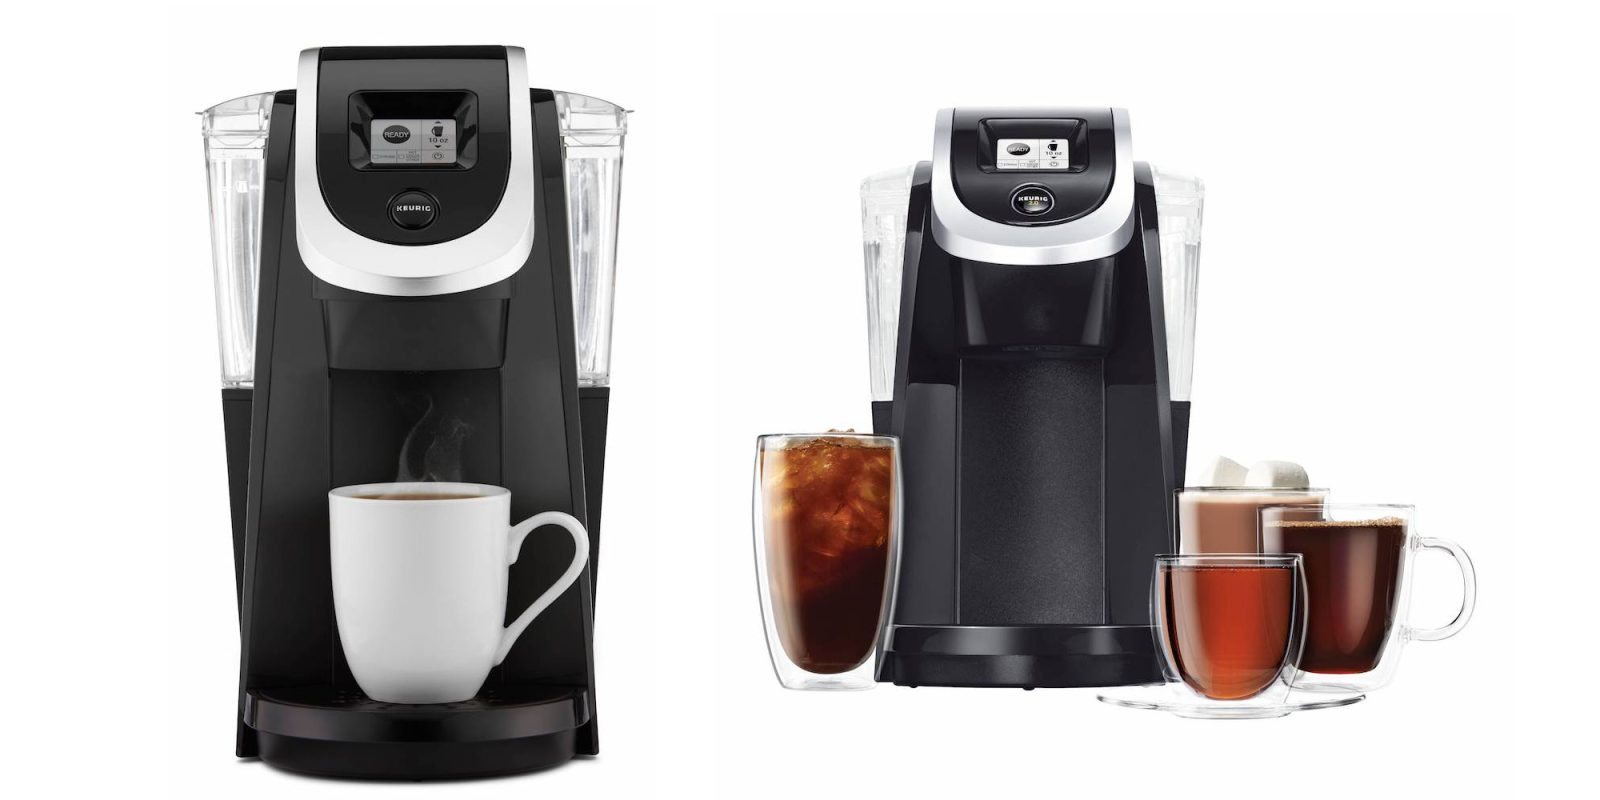 b7a962499a0 Keurig - 9to5Toys